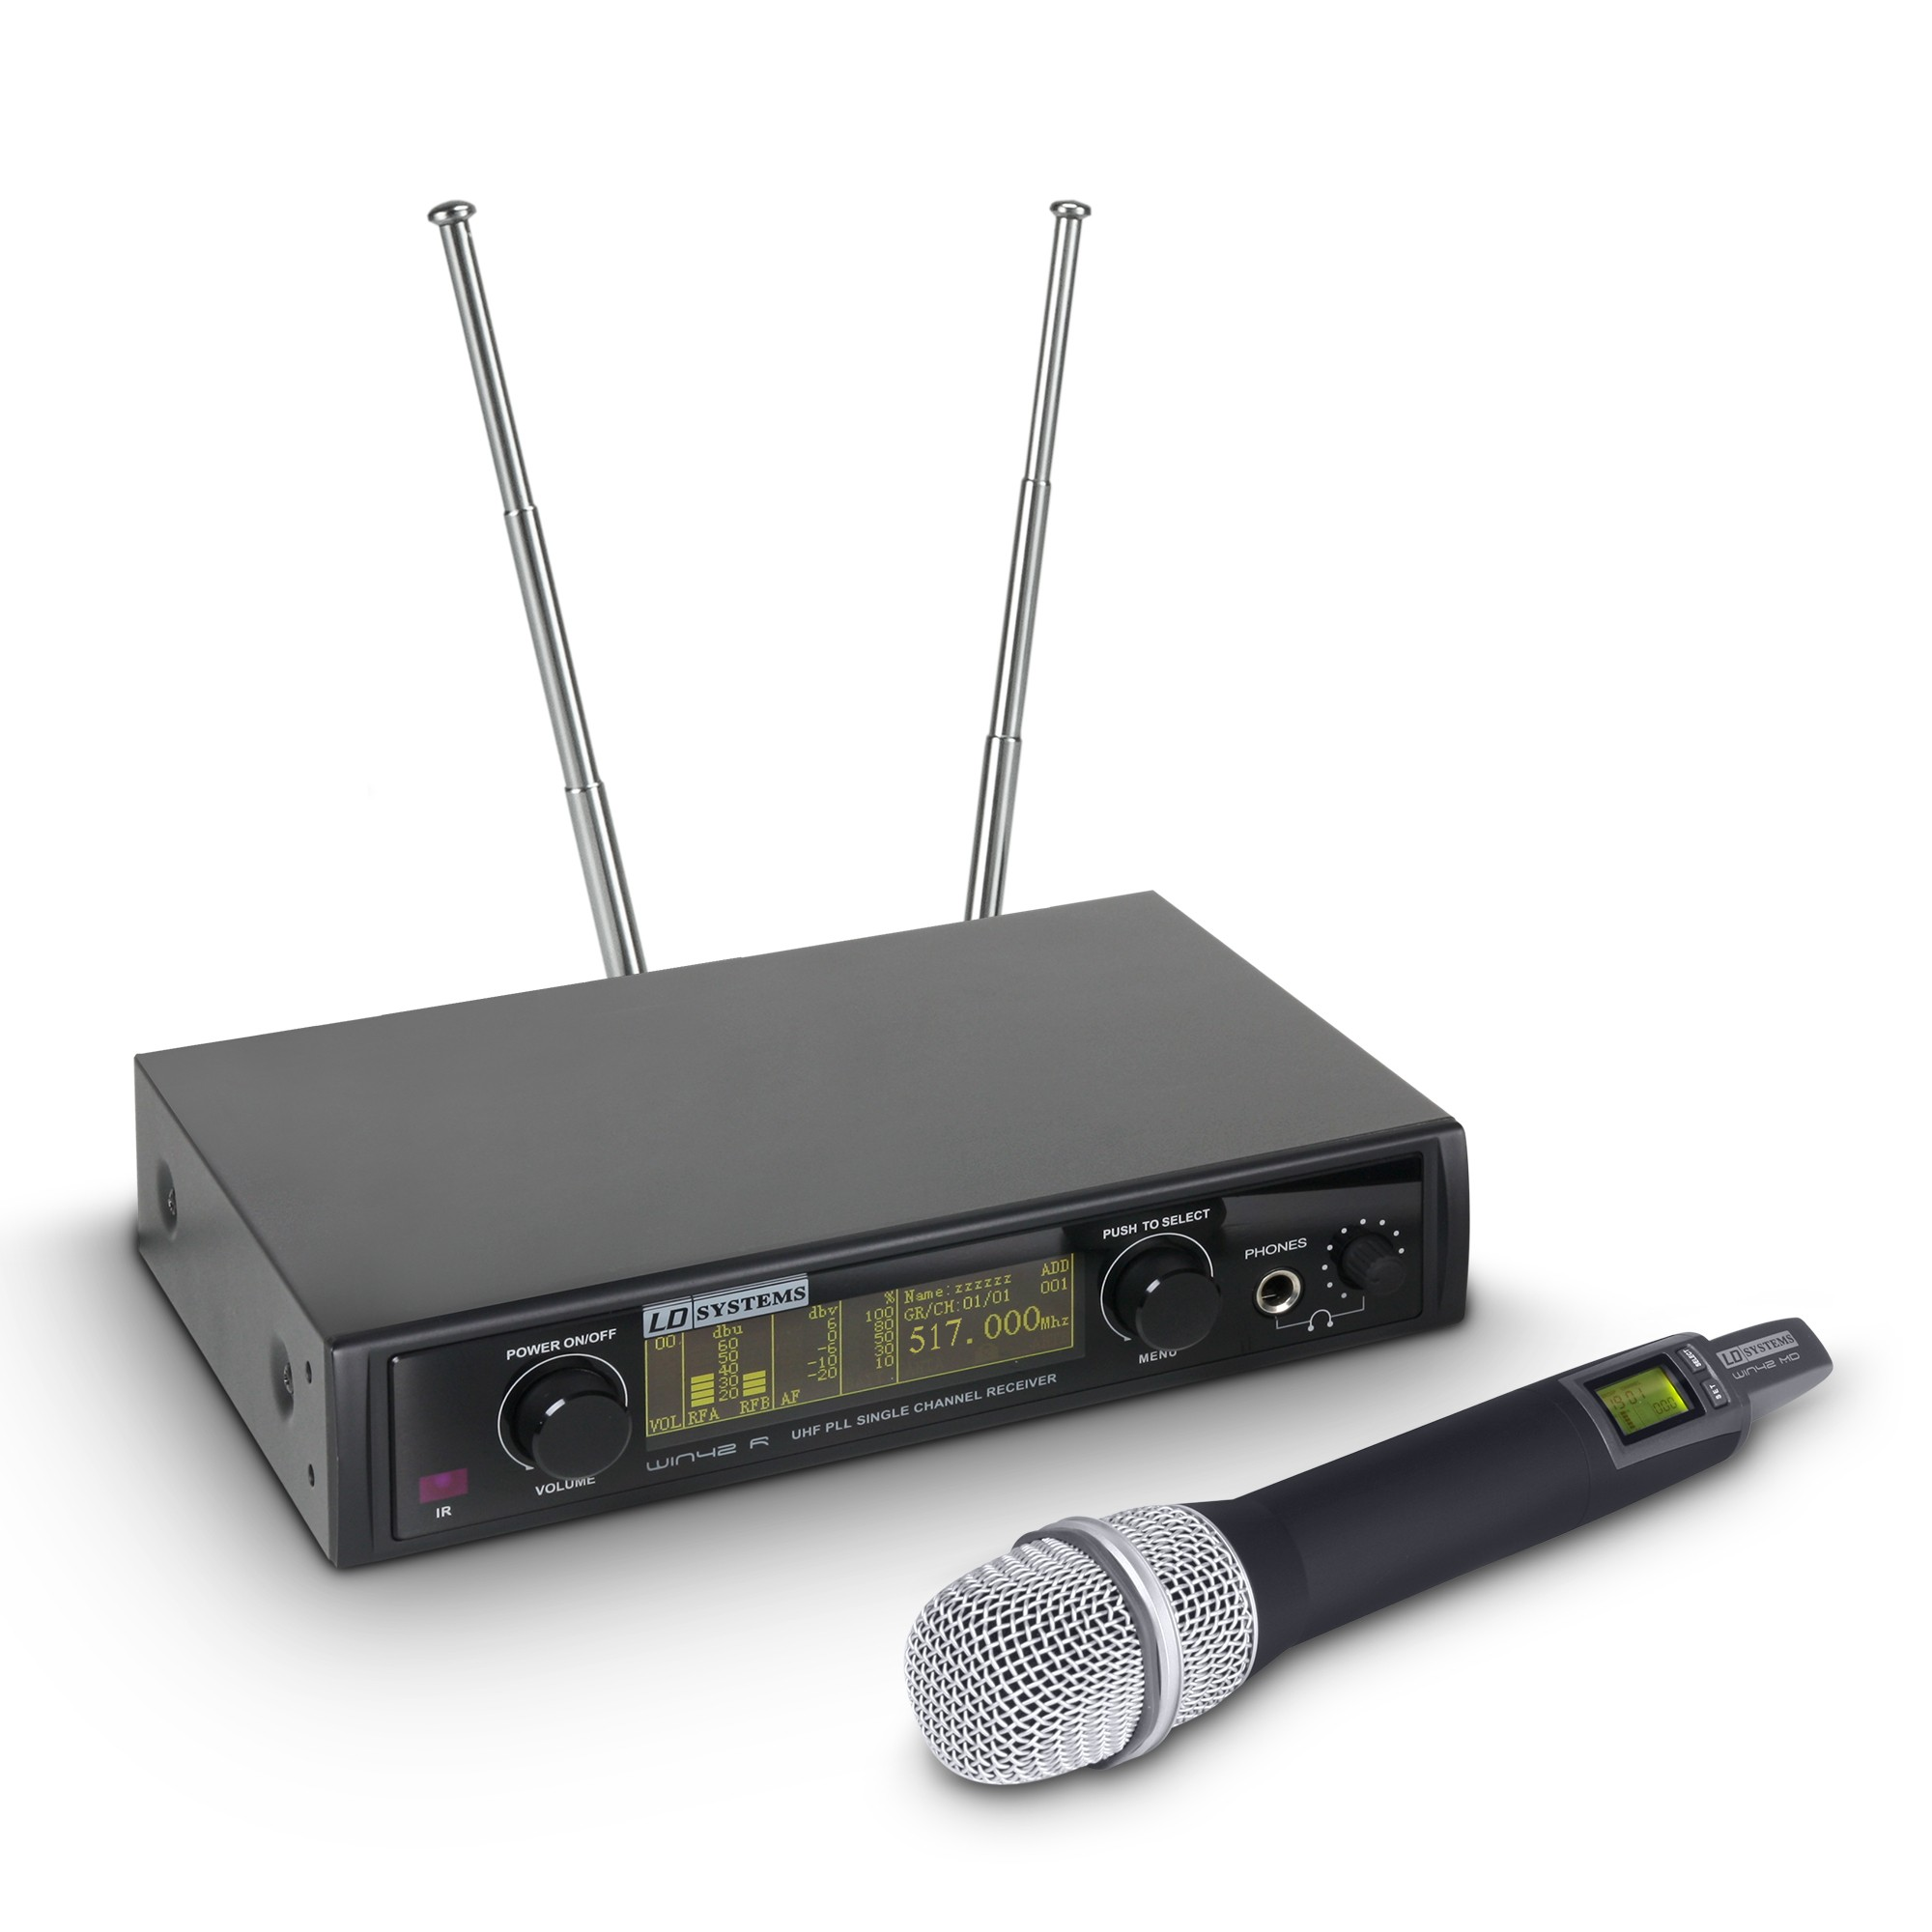 WIN 42 HHC B 5 Wireless Microphone System with Condenser Handheld Microphone